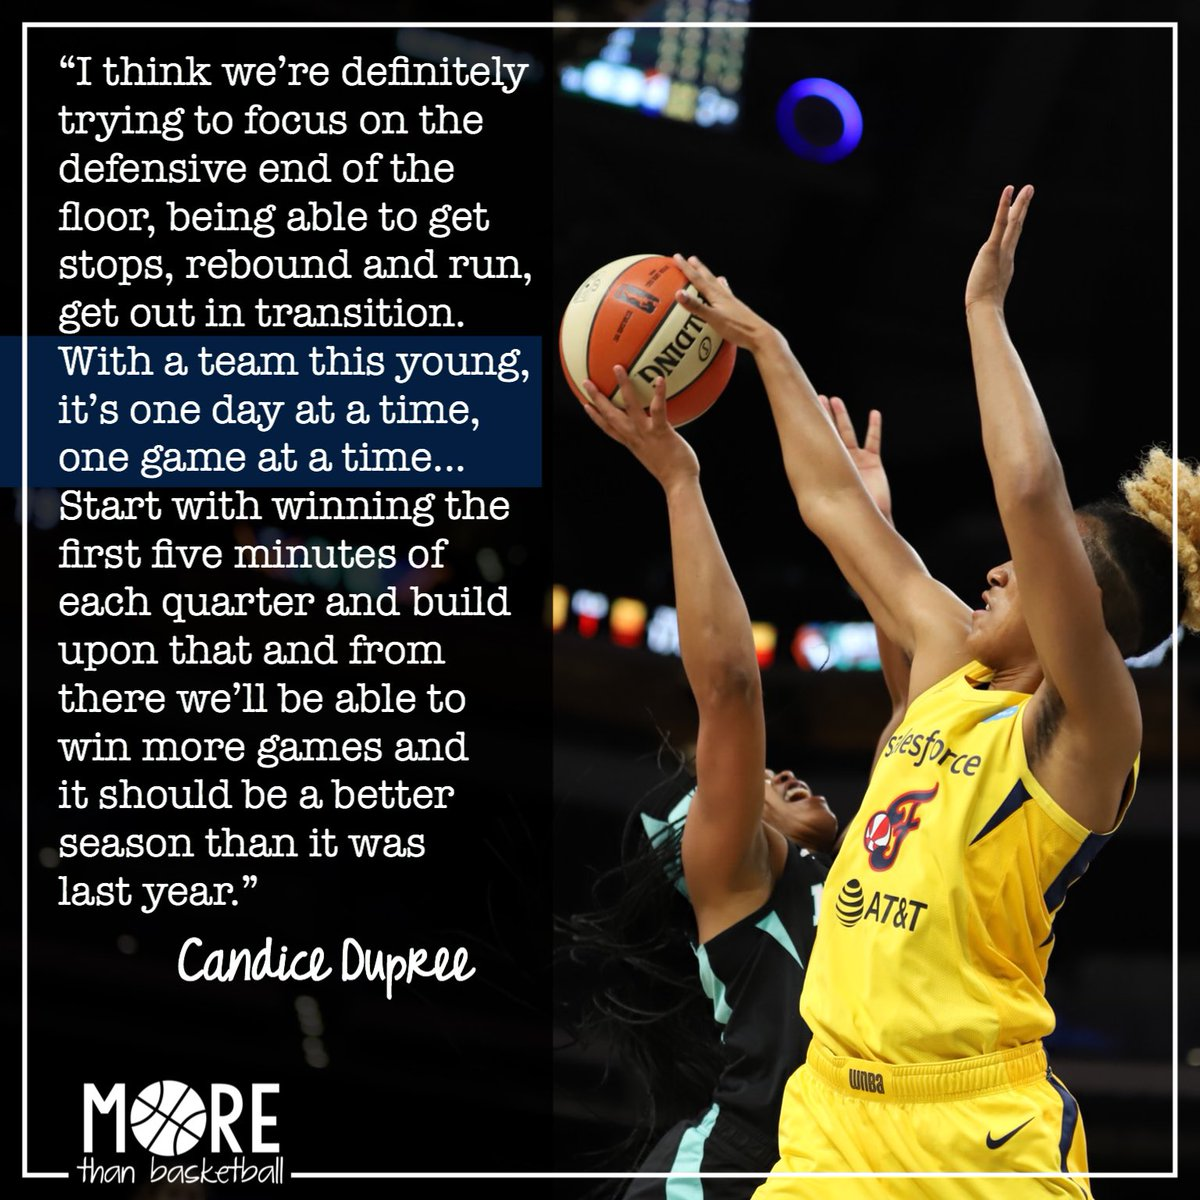 Veteran Candice Dupree believes that one day at a time, one game at a time, one quarter at a time, the @indianafever's young team can grow and improve. Rookie @TheReal_41 is one piece of the puzzle, with this block against the Liberty. . #fever20 #indianafever #allforlove